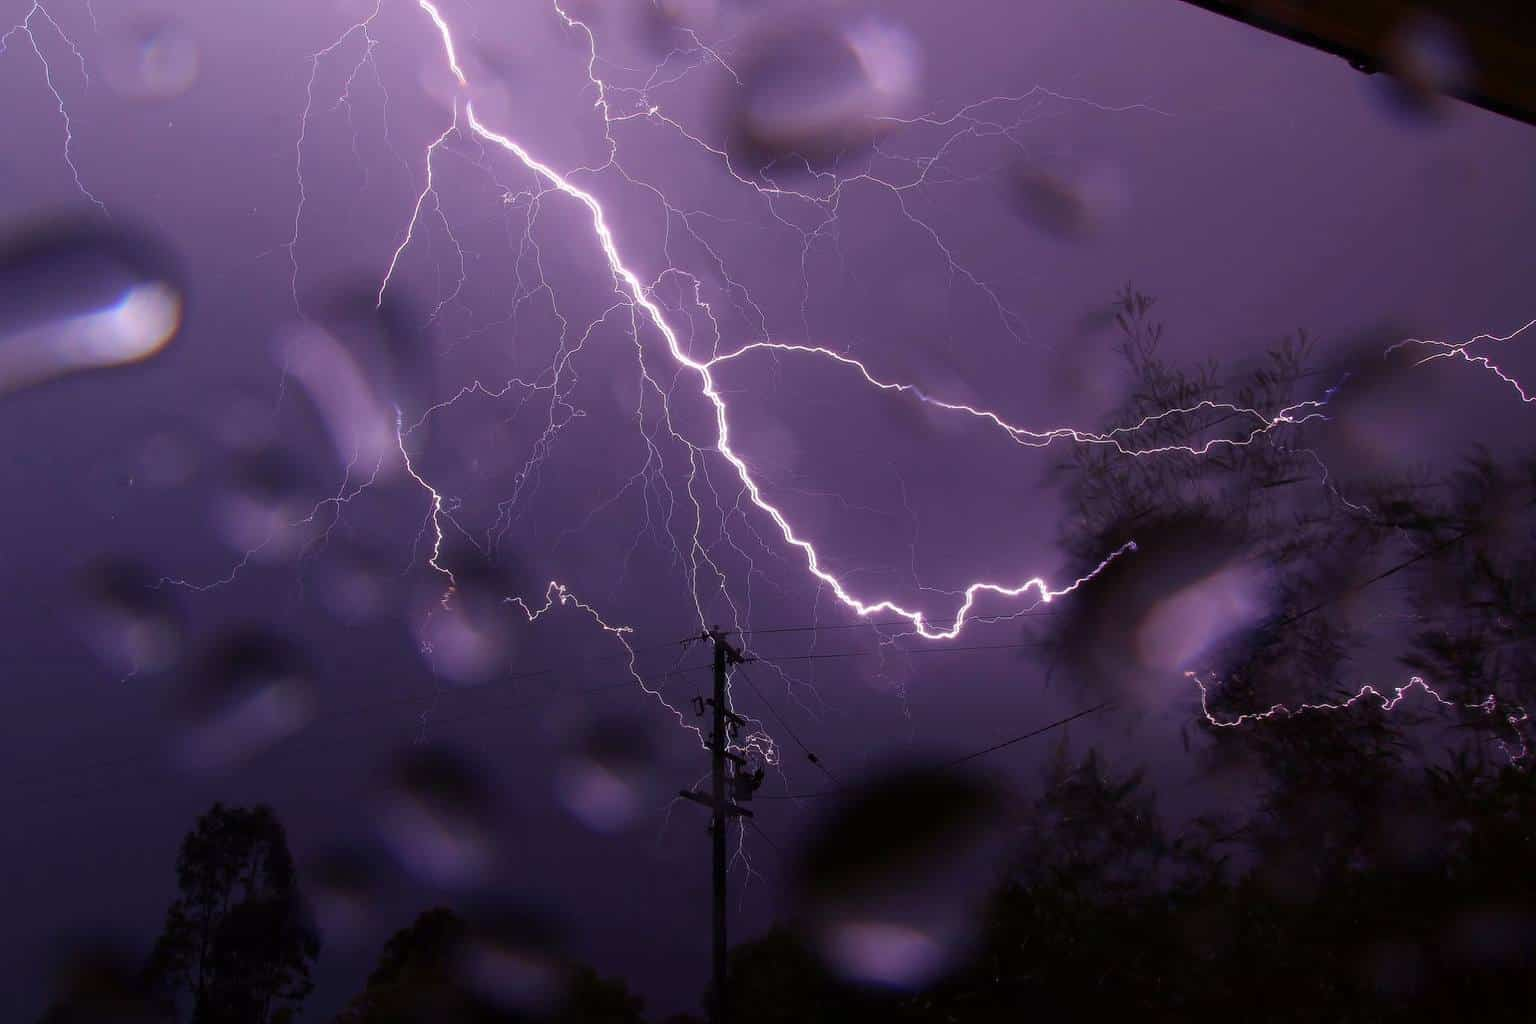 Captured this lil beauty about half an hour ago near Warwick in Southern Qld, Australia. Excuse the raindrops.